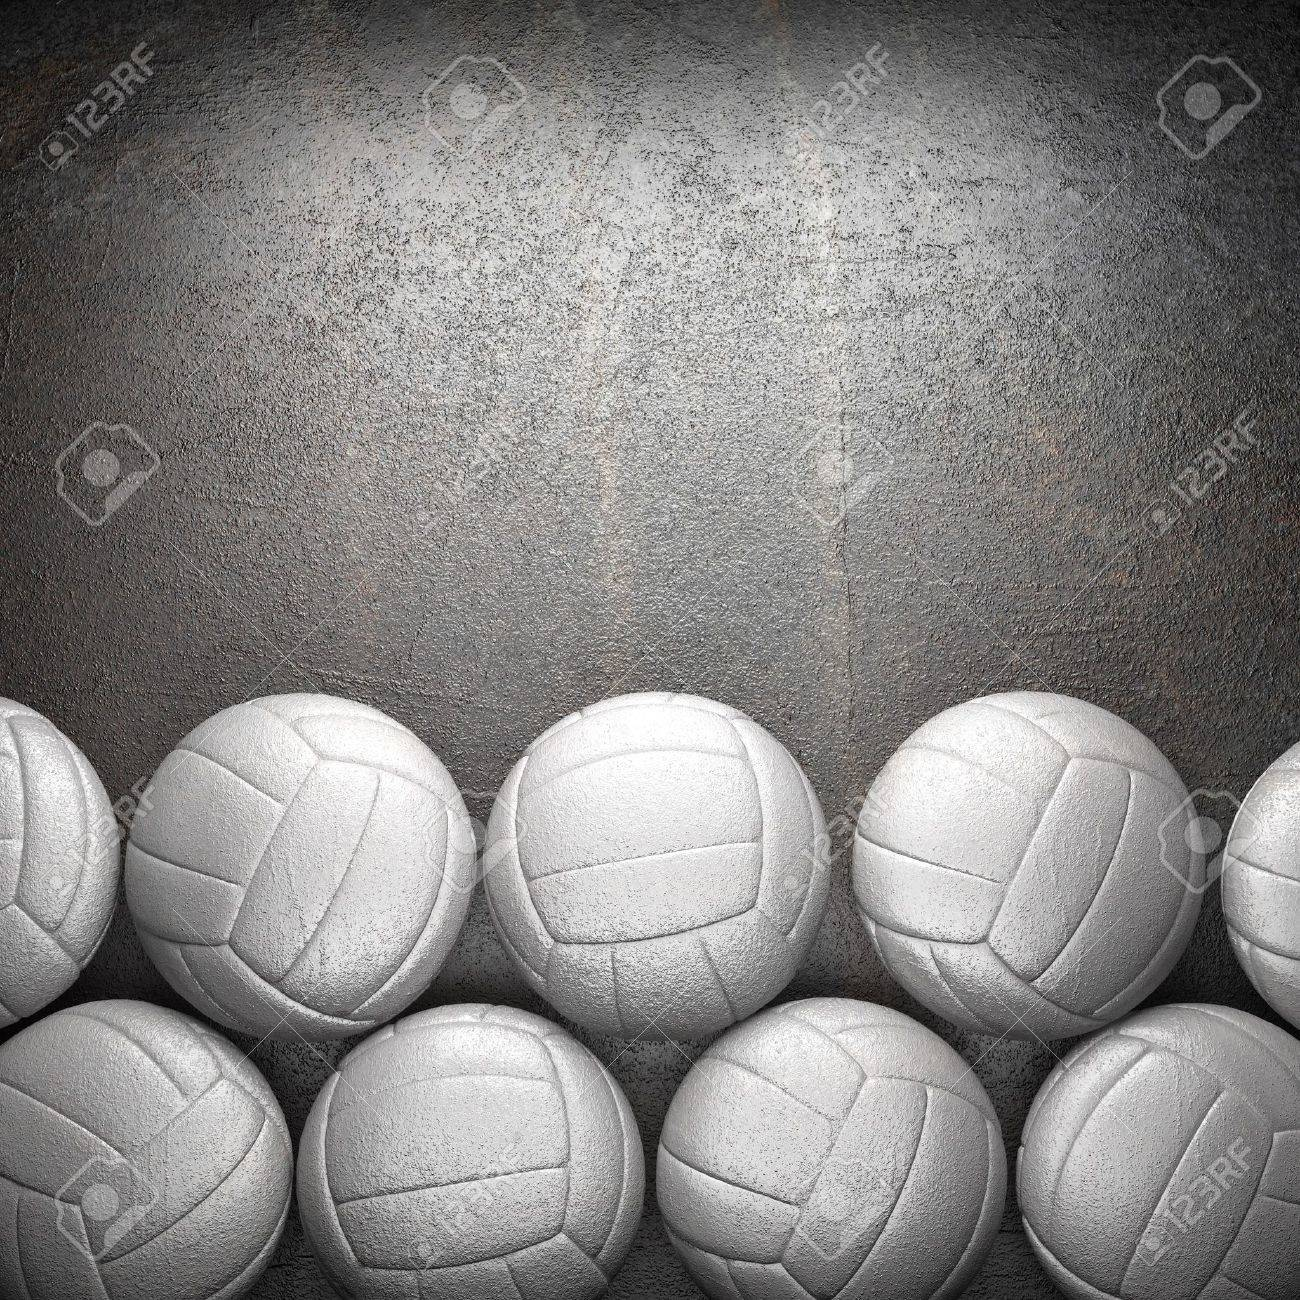 Volleyball ball and metal wall background - 20141779